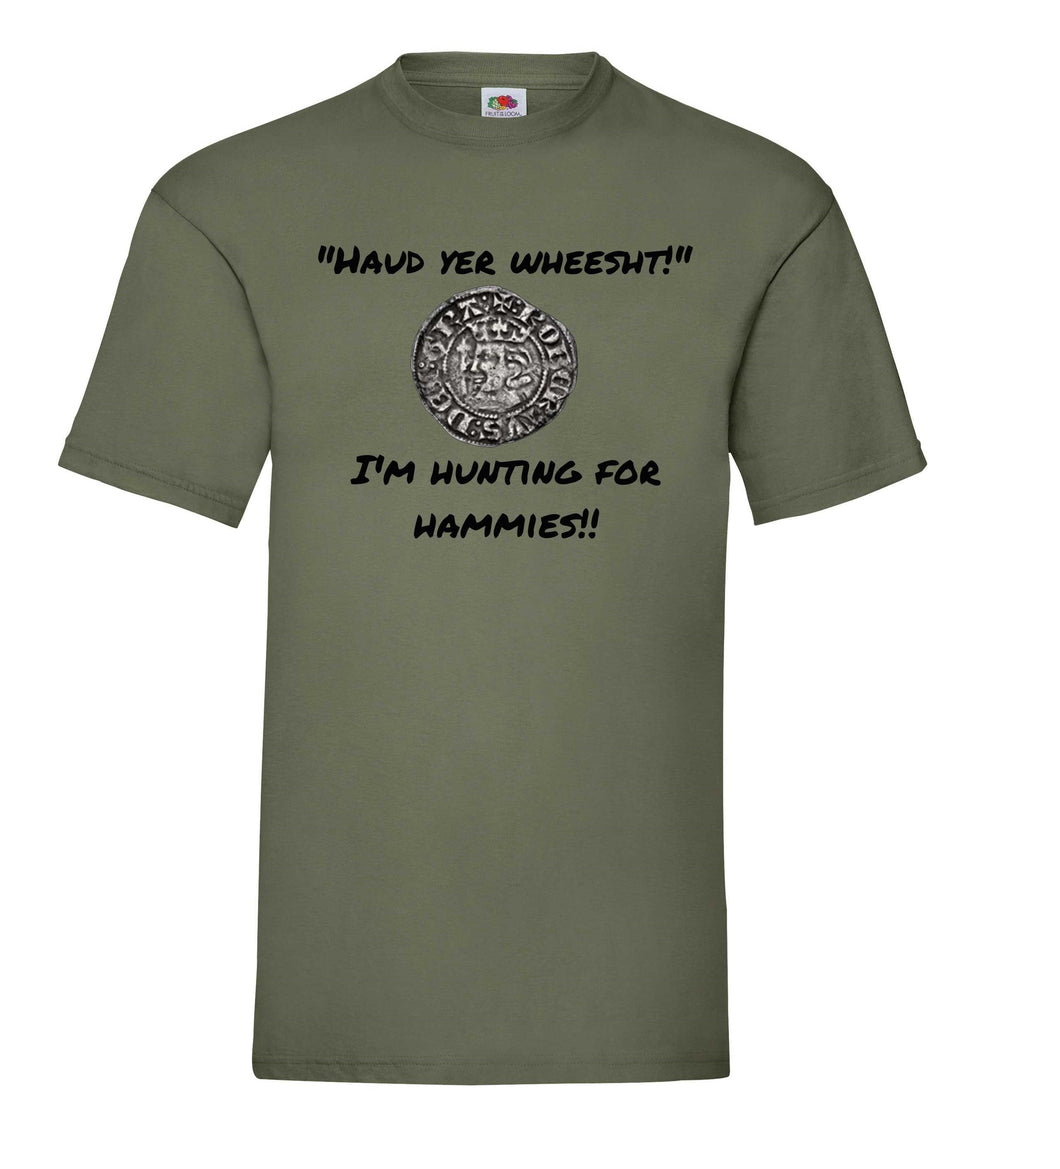 LIMITED EDITION - Scottish Relics Metal Detecting T-Shirt